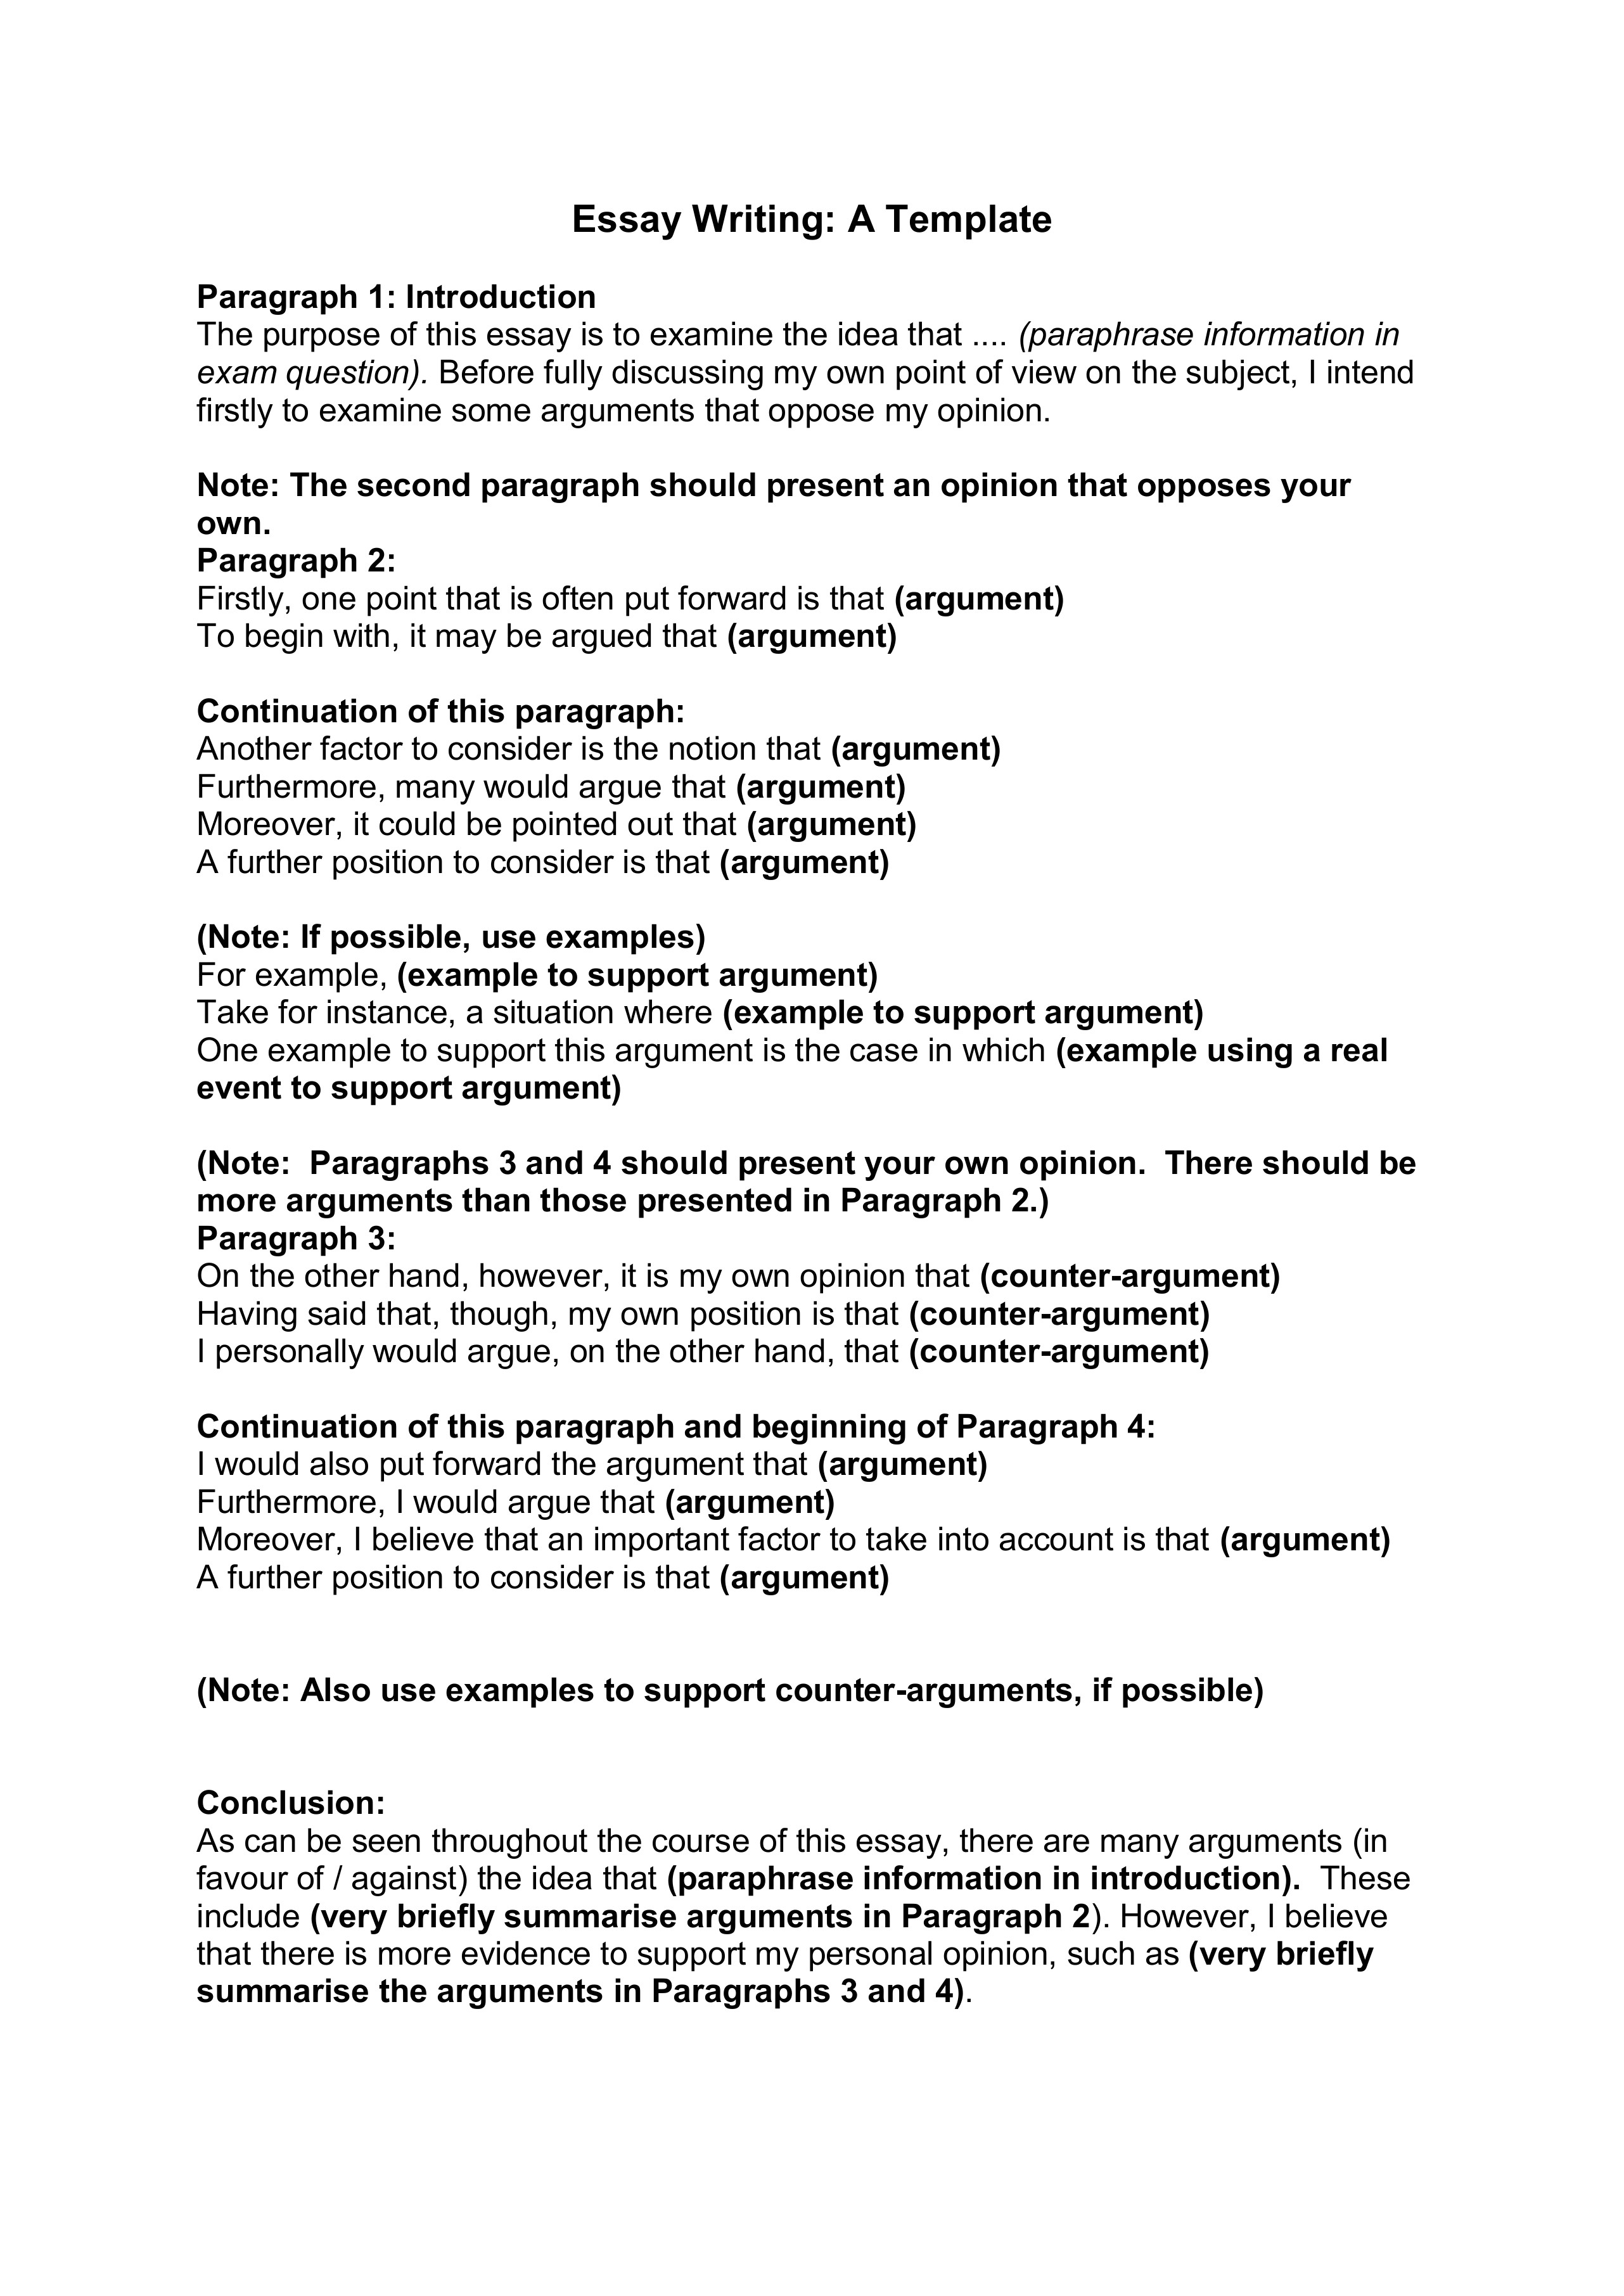 012 Essay Writing Template For Part 2cbu003d Research Paper Order Striking Papers Full